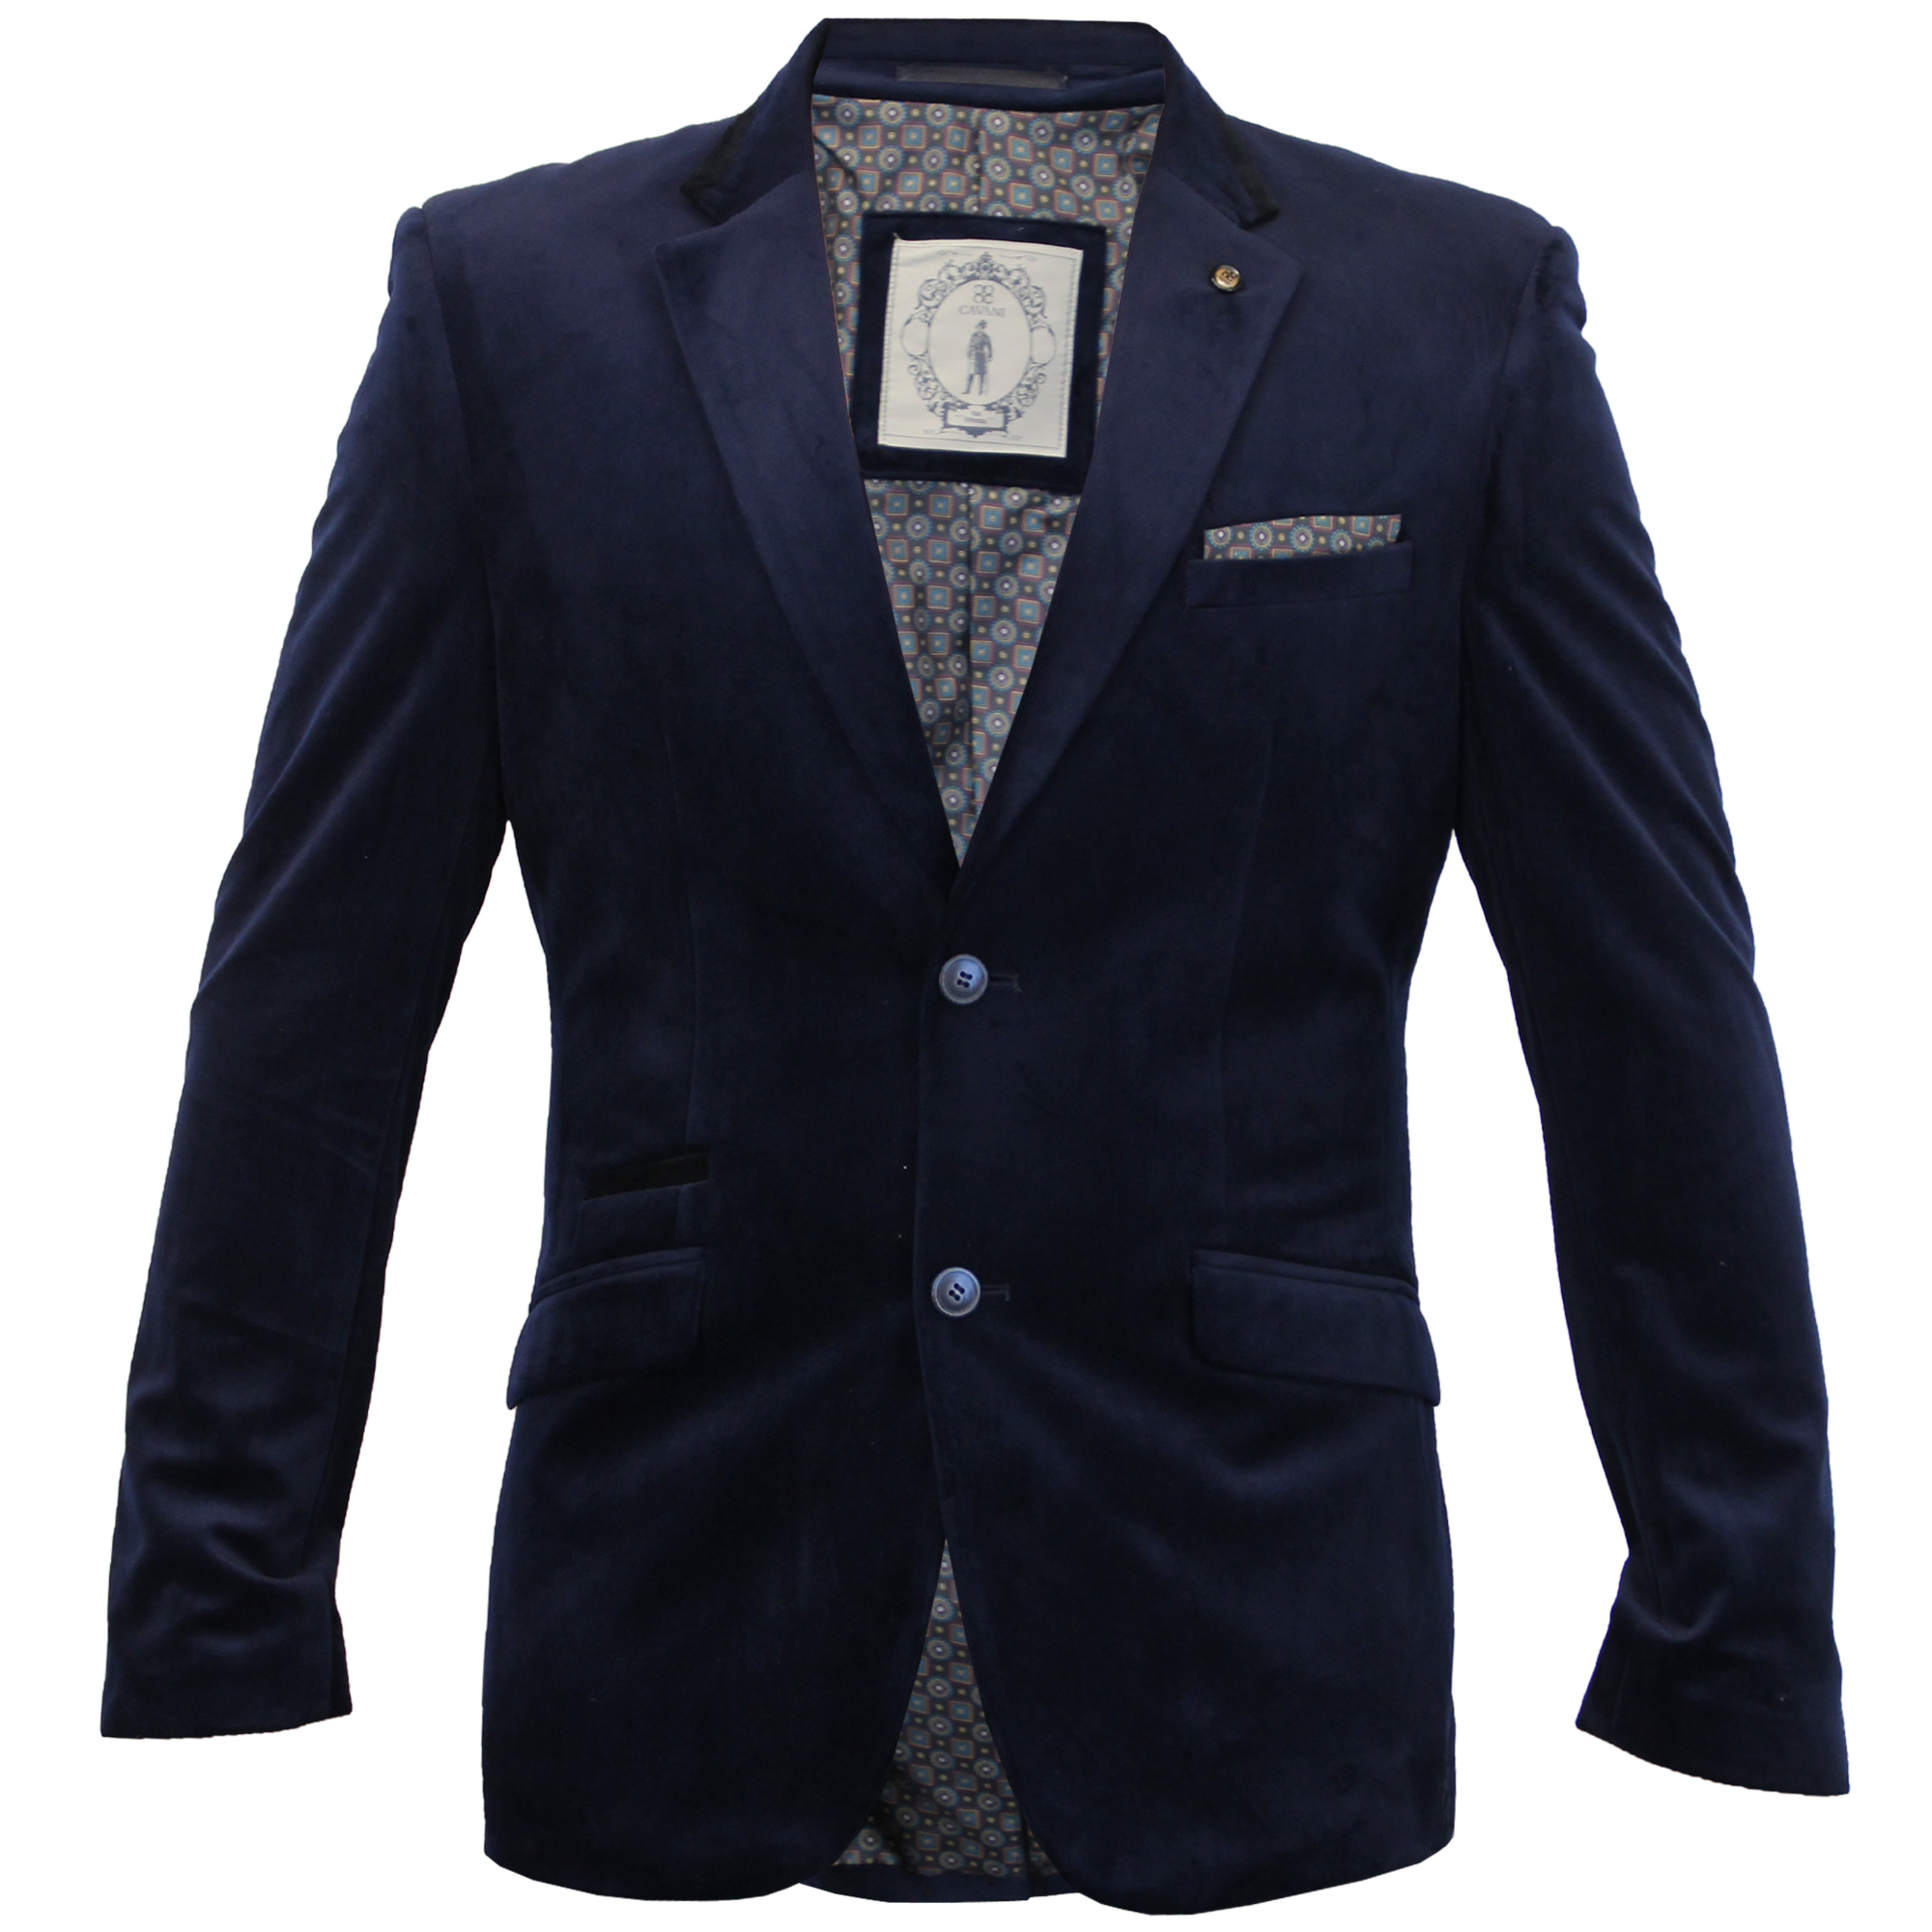 Blazers Jackets Mens: Mens Blazer Cavani Coat Dinner Suit Jacket Herringbone